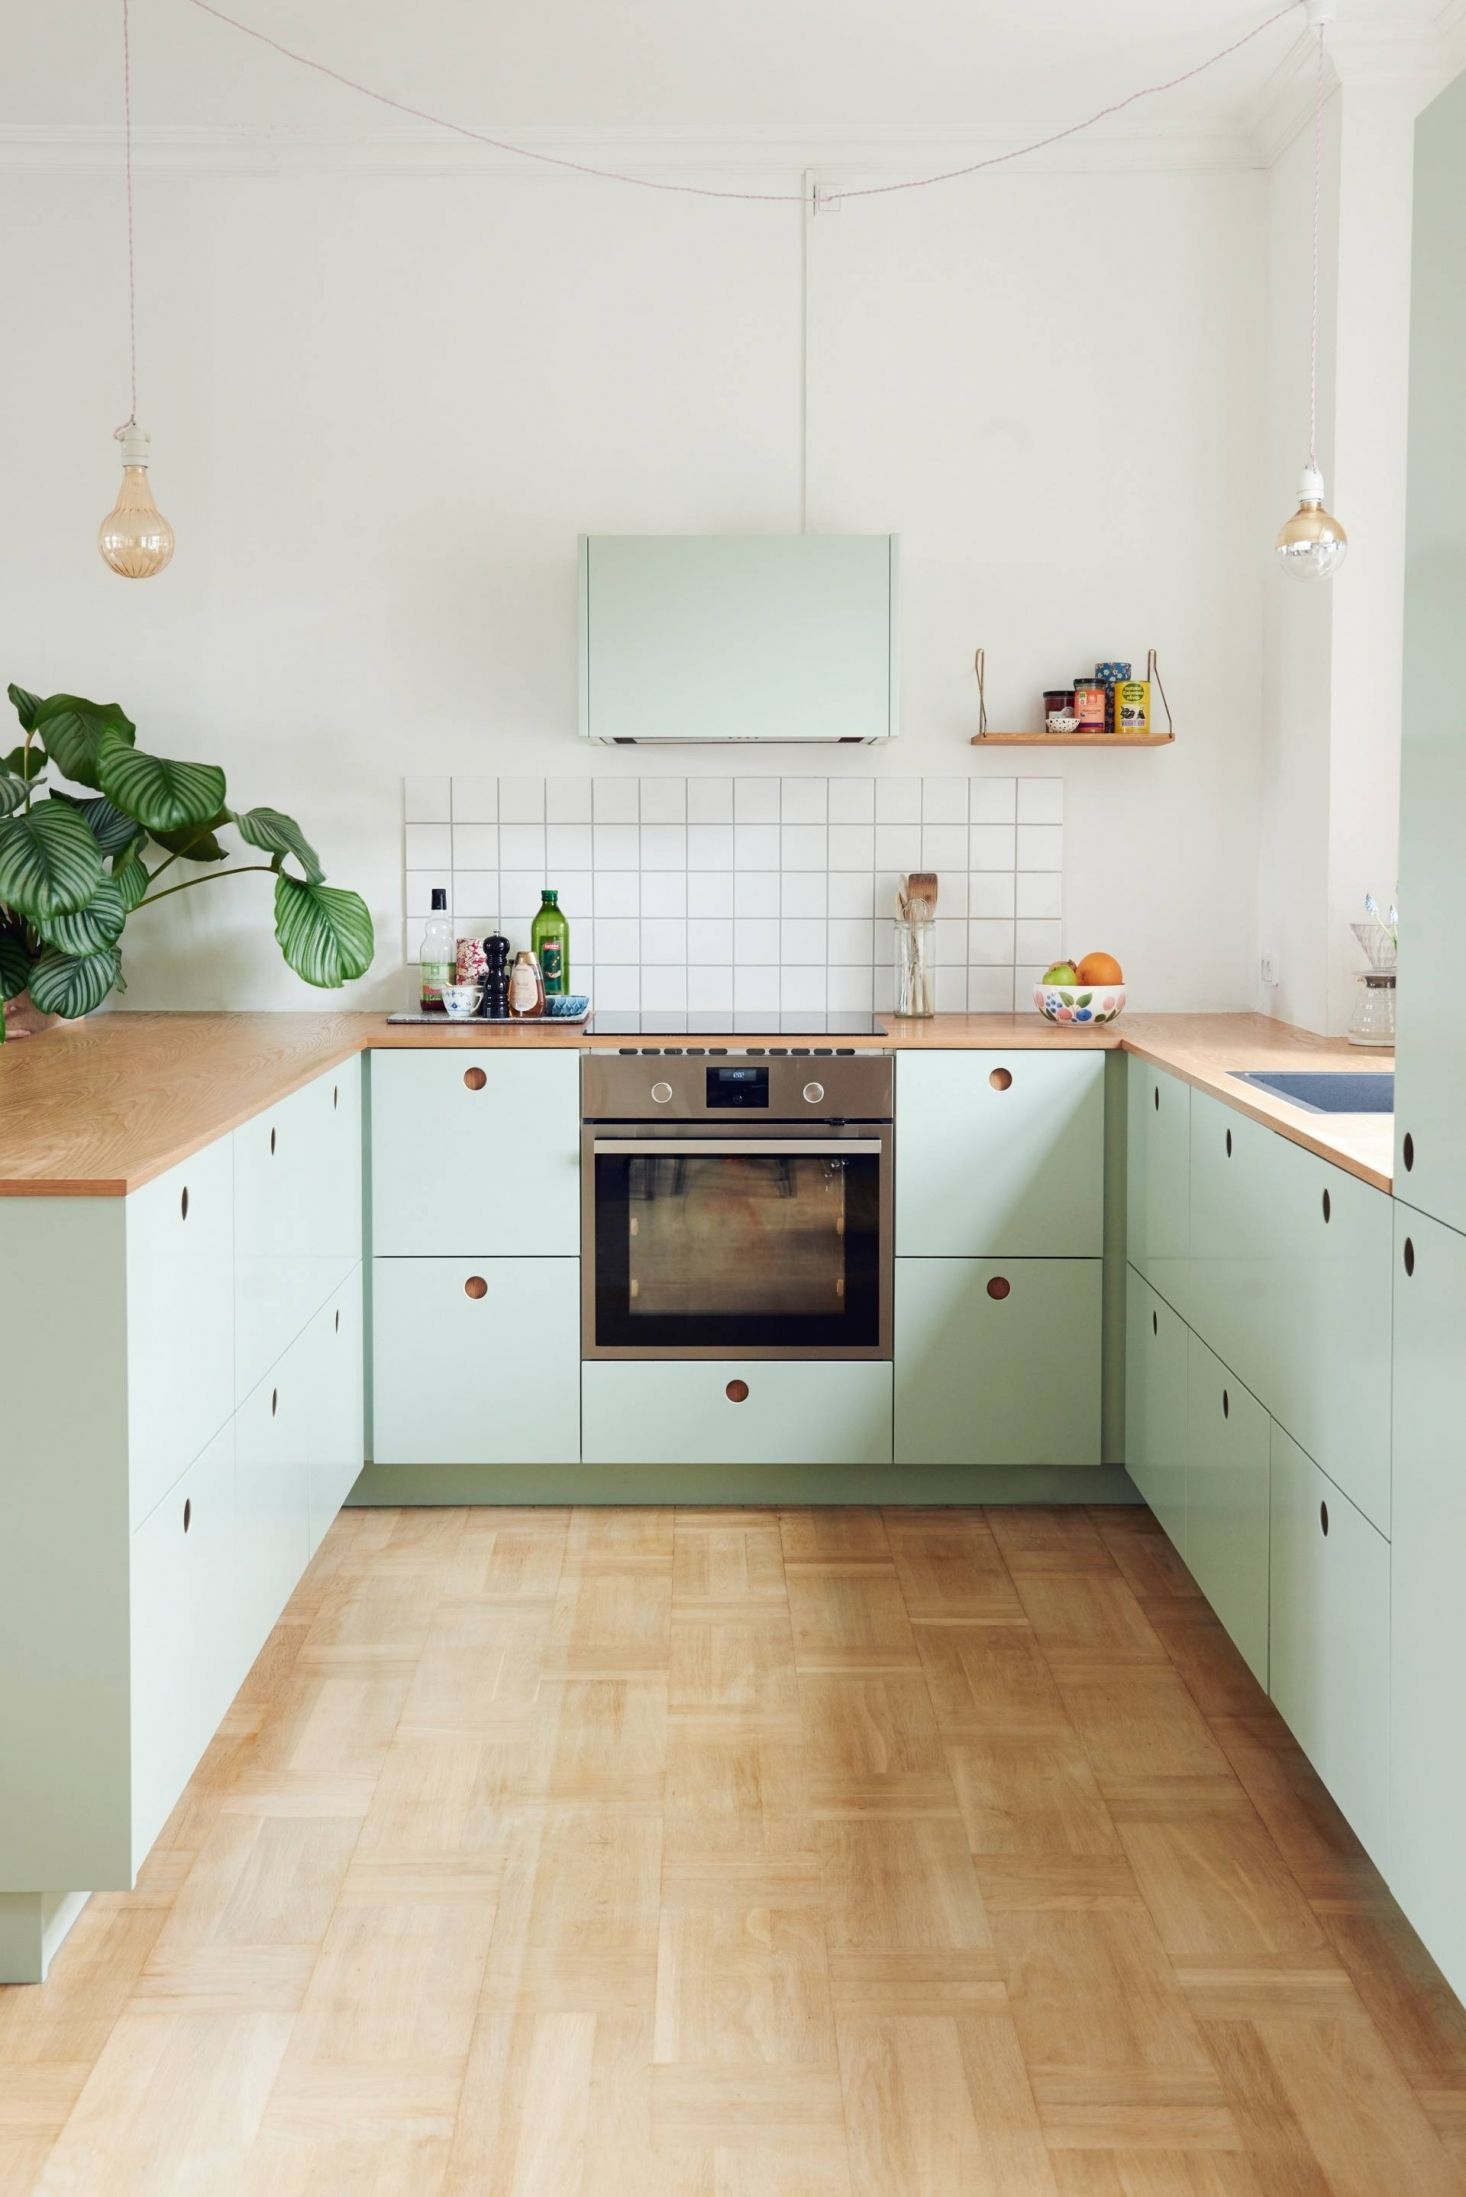 Remodeling 101 The Verdict on Vented vs. NonVented Range